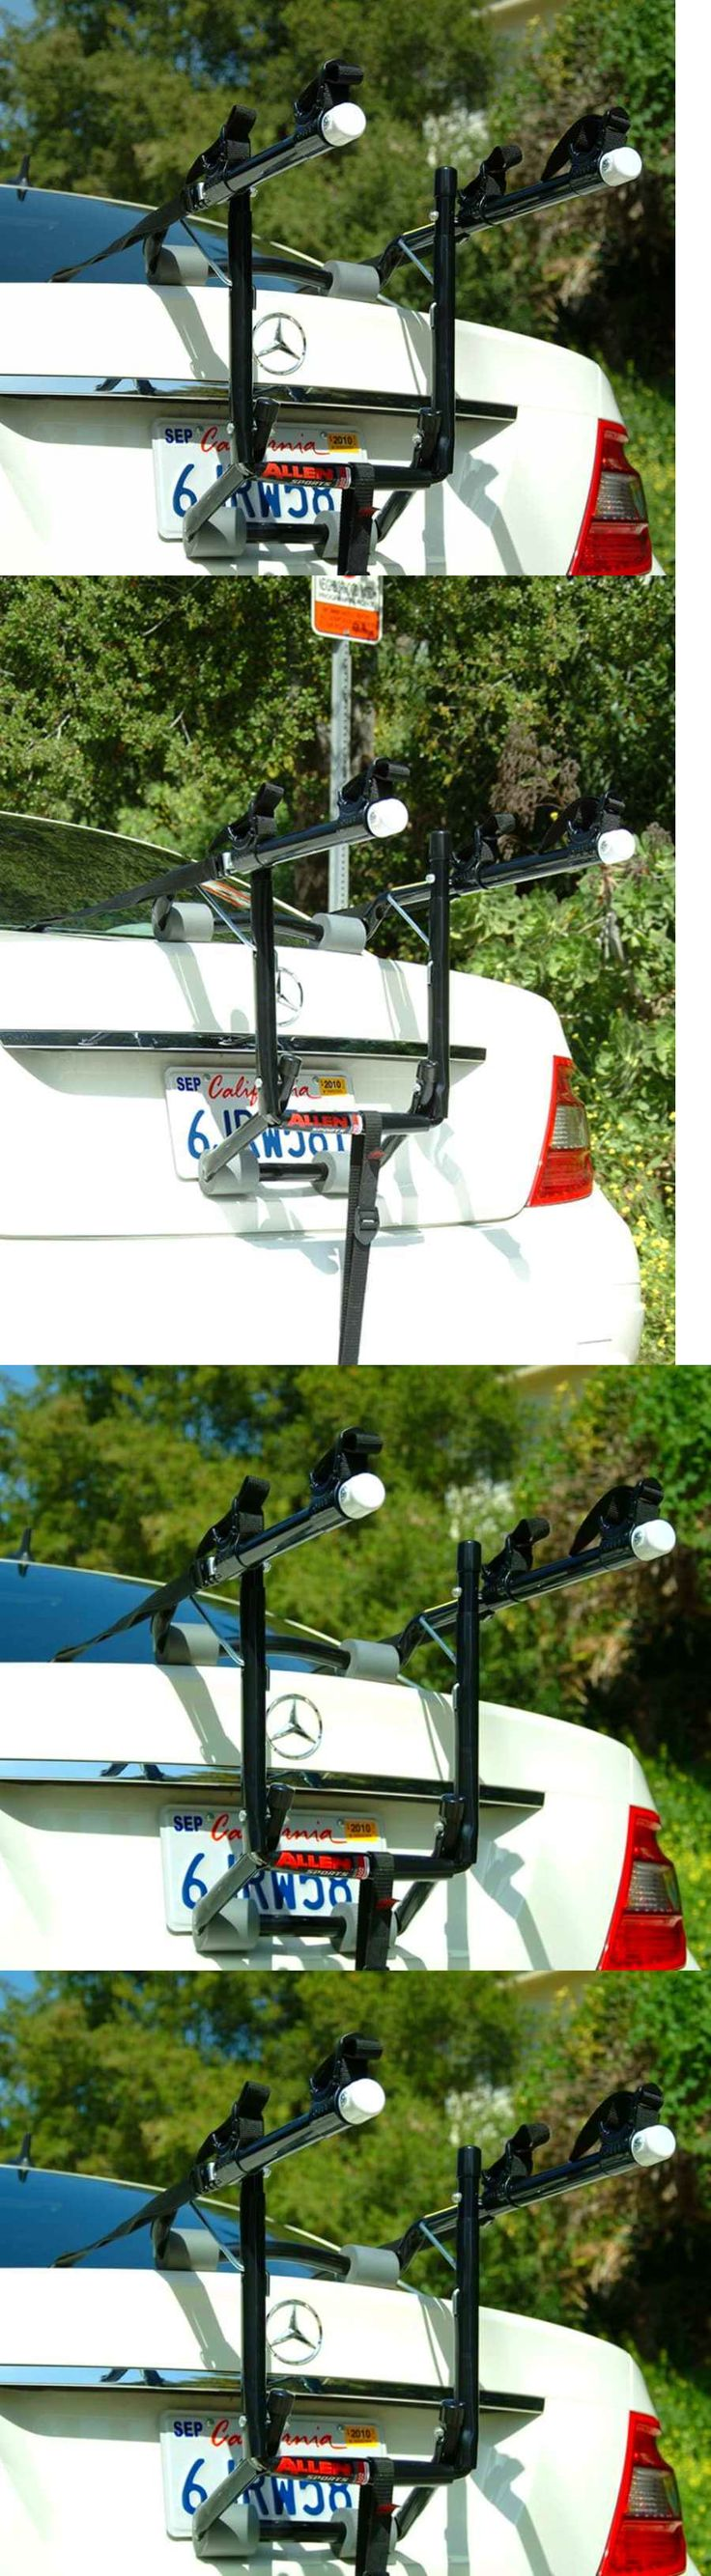 Car and Truck Racks 177849: Deluxe 2-Bike Carrier Holder Rack For Car Trunk Mount Rack By Allen Sports -> BUY IT NOW ONLY: $49.9 on eBay!